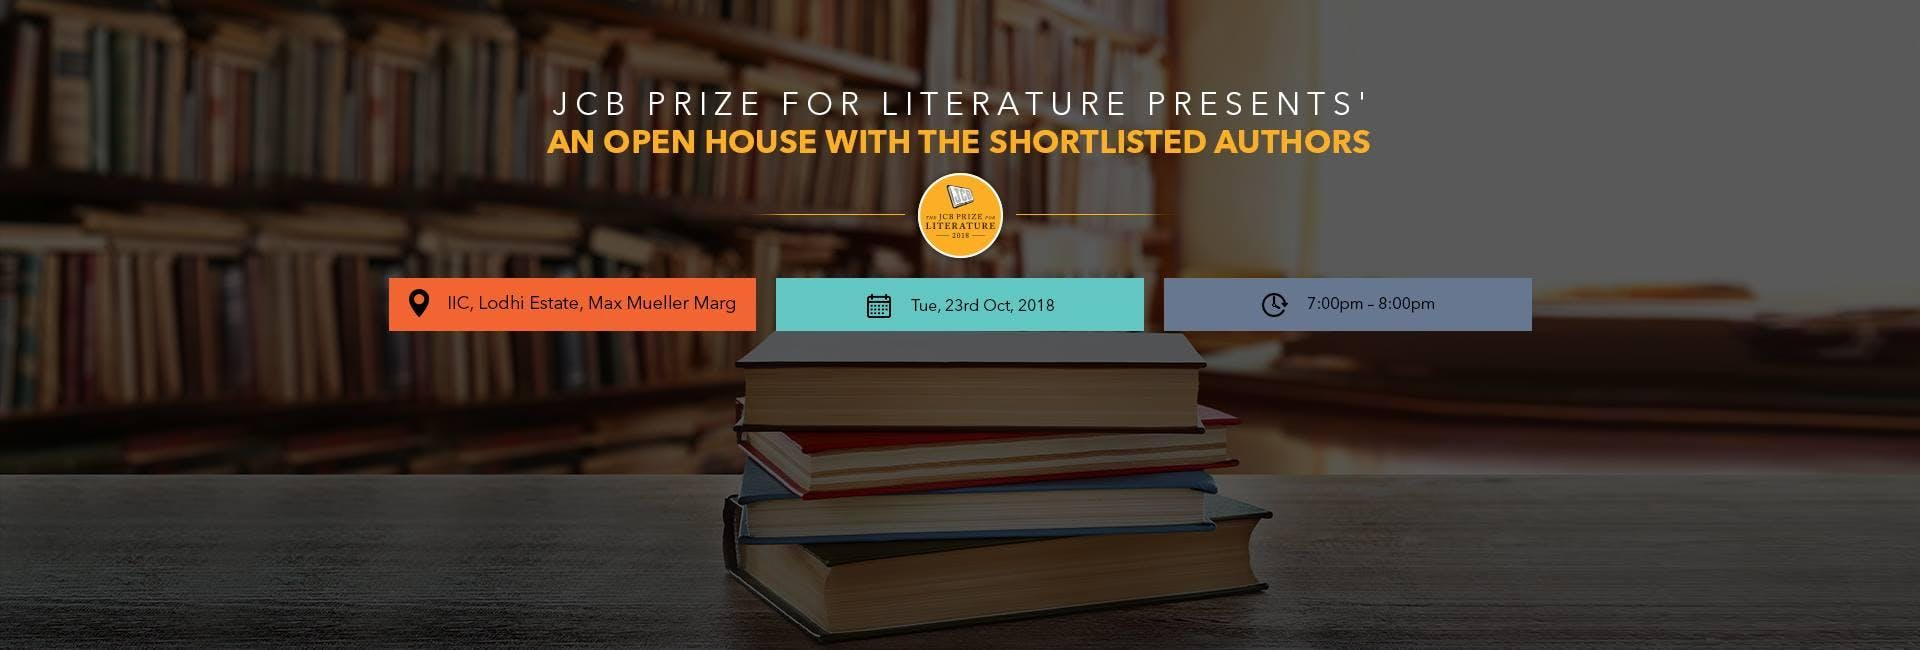 Open house with the JCB Prize for Literature